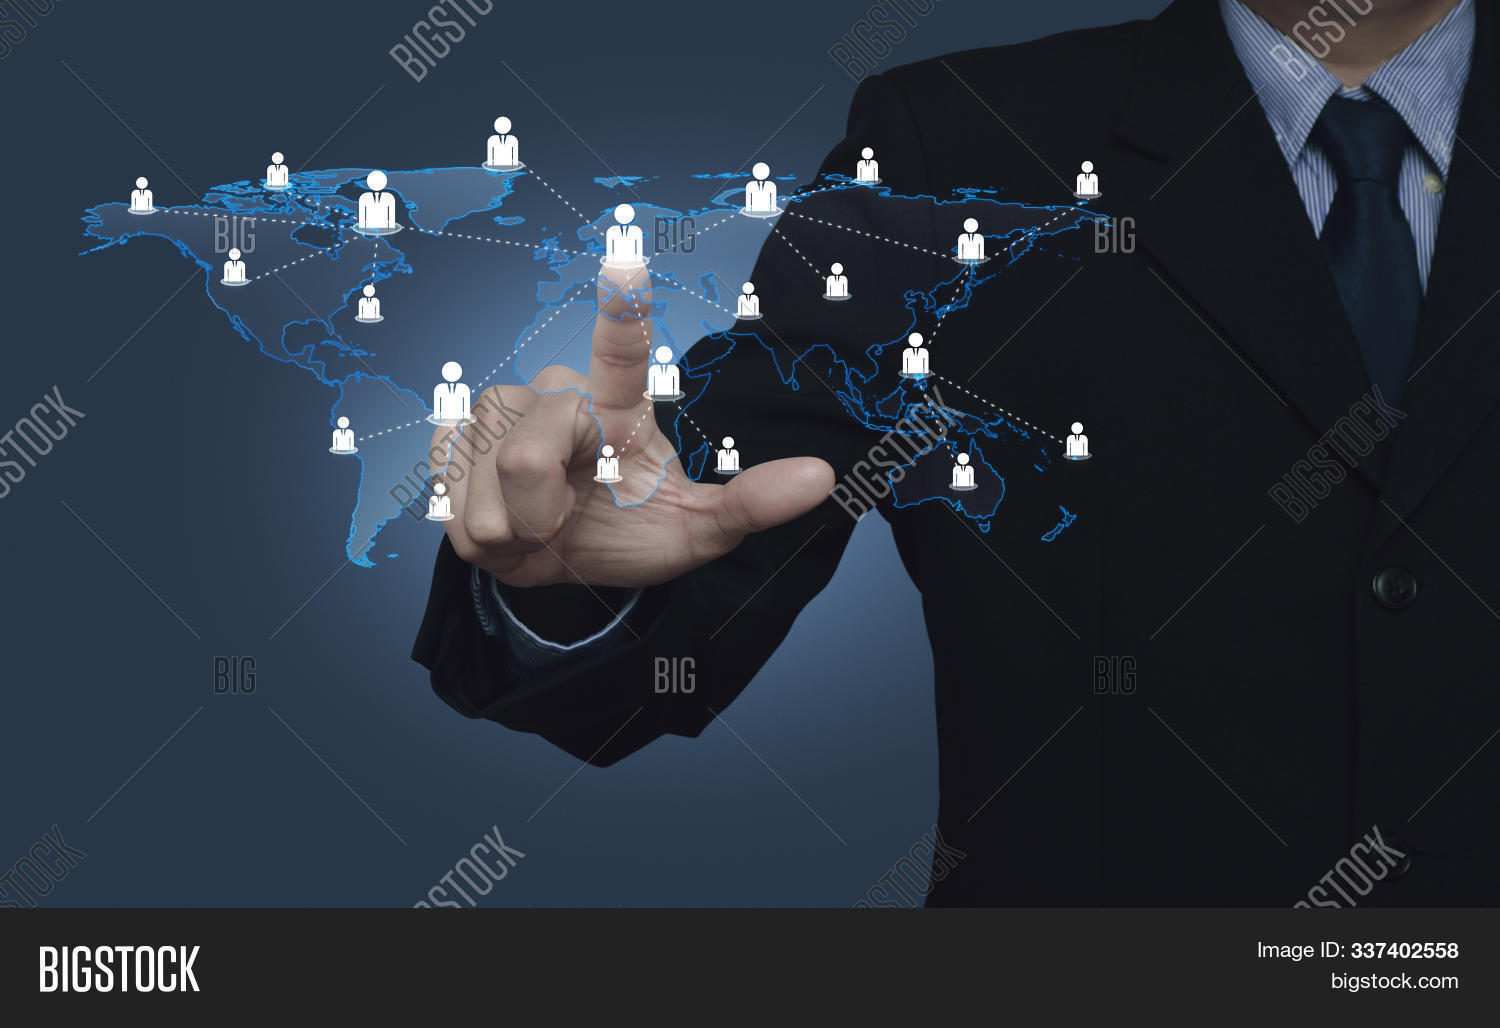 atlas,blank,blue,business,businessman,click,communication,computer,concept,connection,copy,digital,empty,finger,global,globe,gradient,hand,icon,idea,industry,internet,light,man,map,modern,network,online,partners,point,press,push,screen,select,sign,social,space,suit,symbol,team,teamwork,technology,tone,touch,touchscreen,world,worldwide